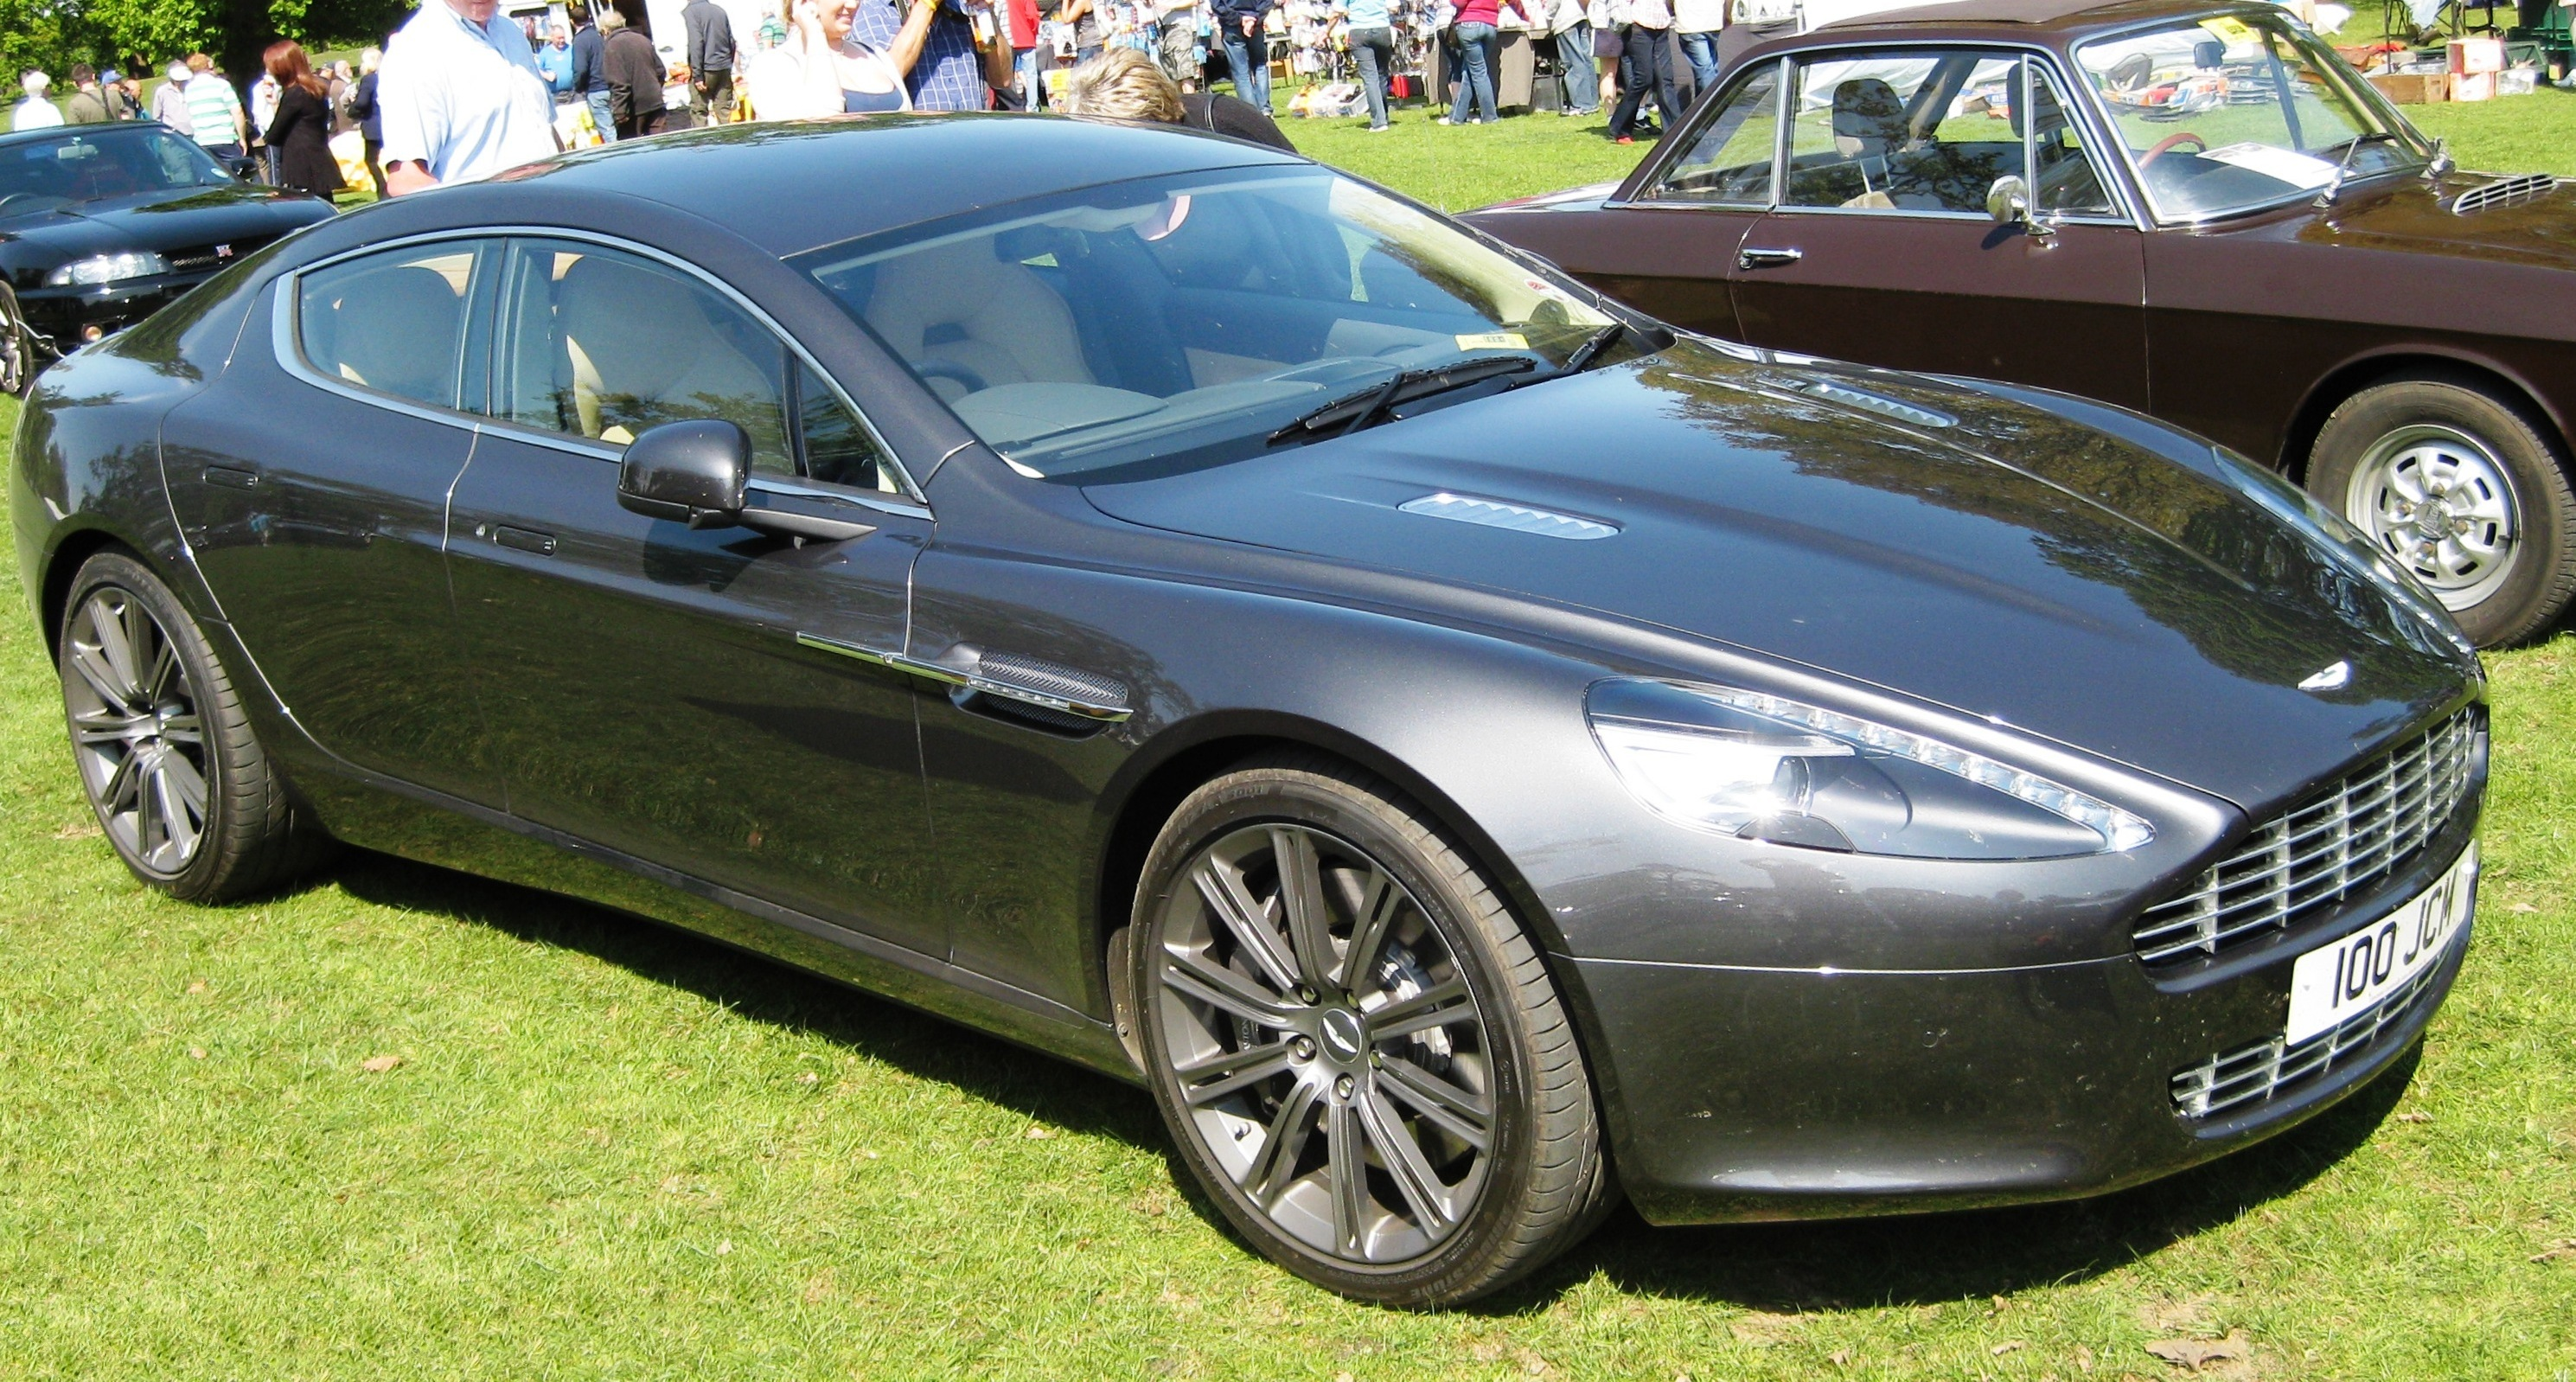 file:aston martin rapide 2010or2011 at woburn - wikimedia commons